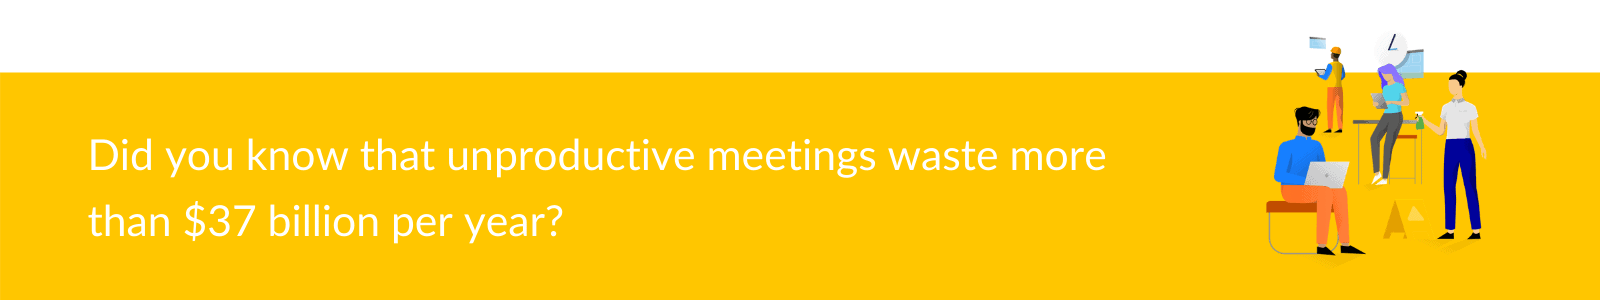 Unproductive meetings waste billions yearly